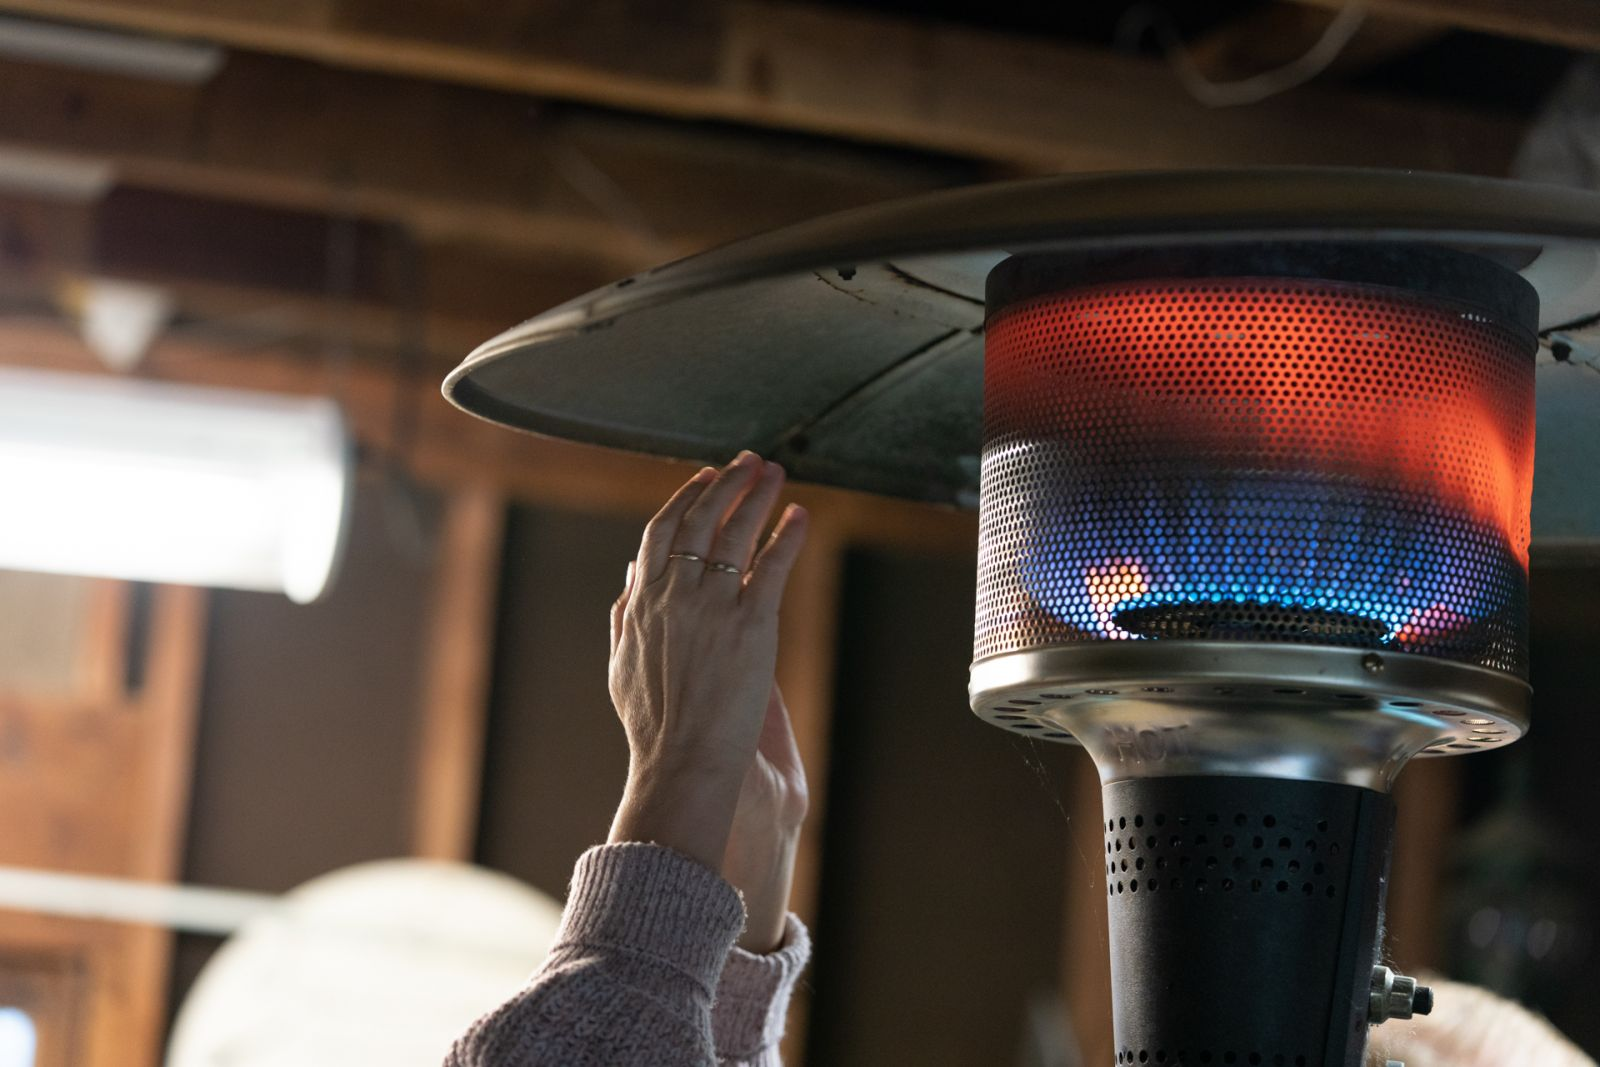 Insulating a detached garage saves a lot of heating expense